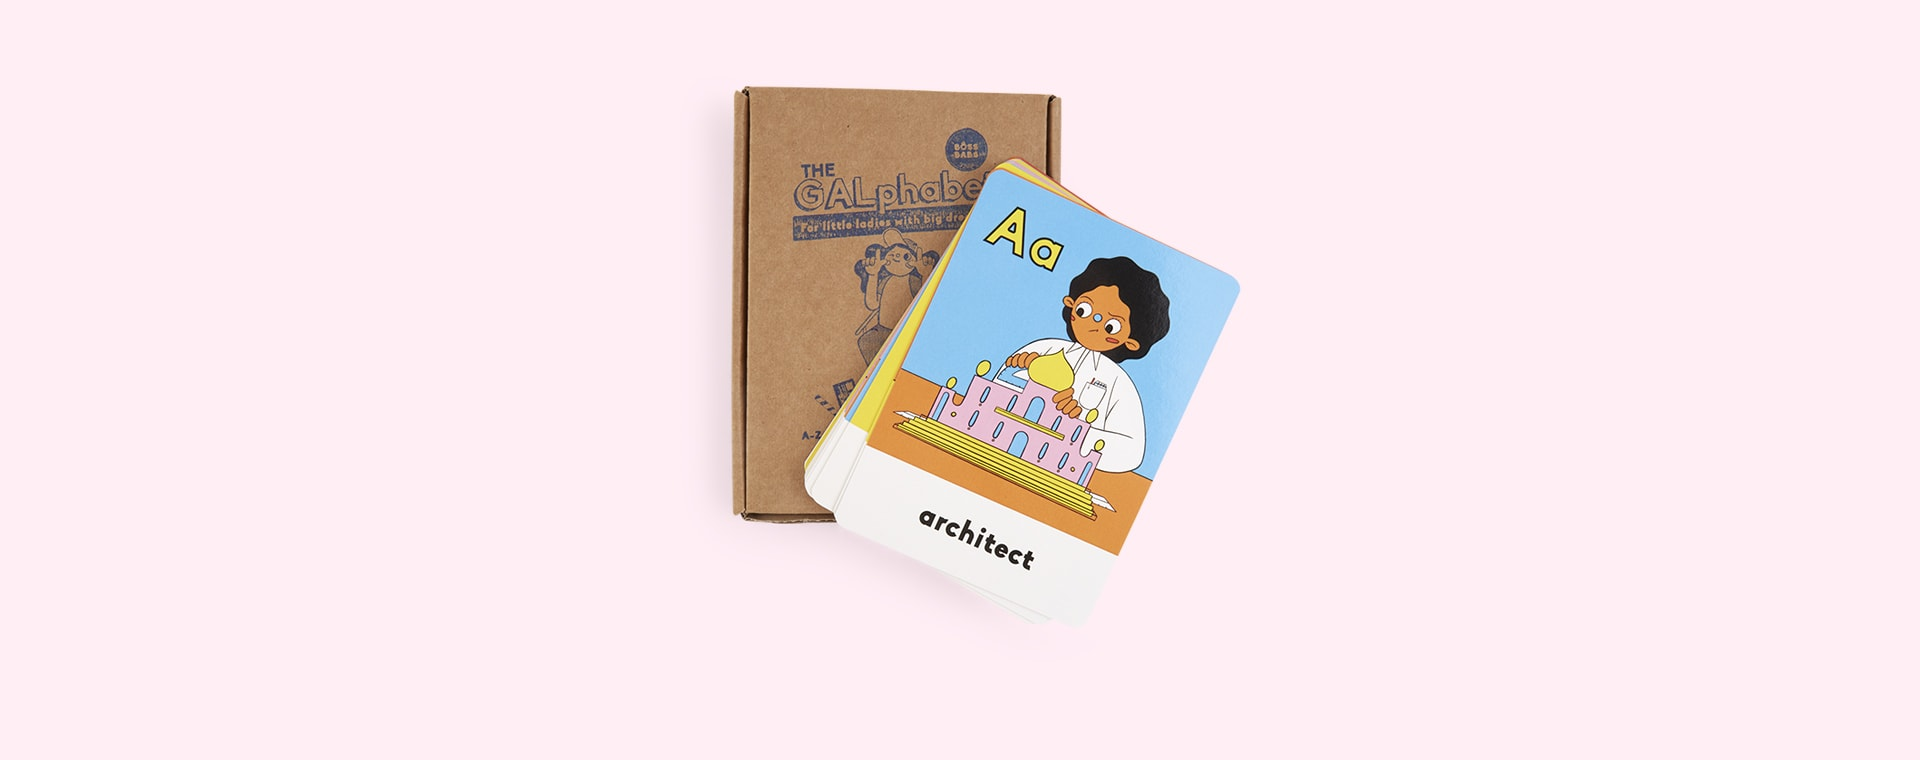 Multi Boss Babs The GALphabet ABC Flash Cards